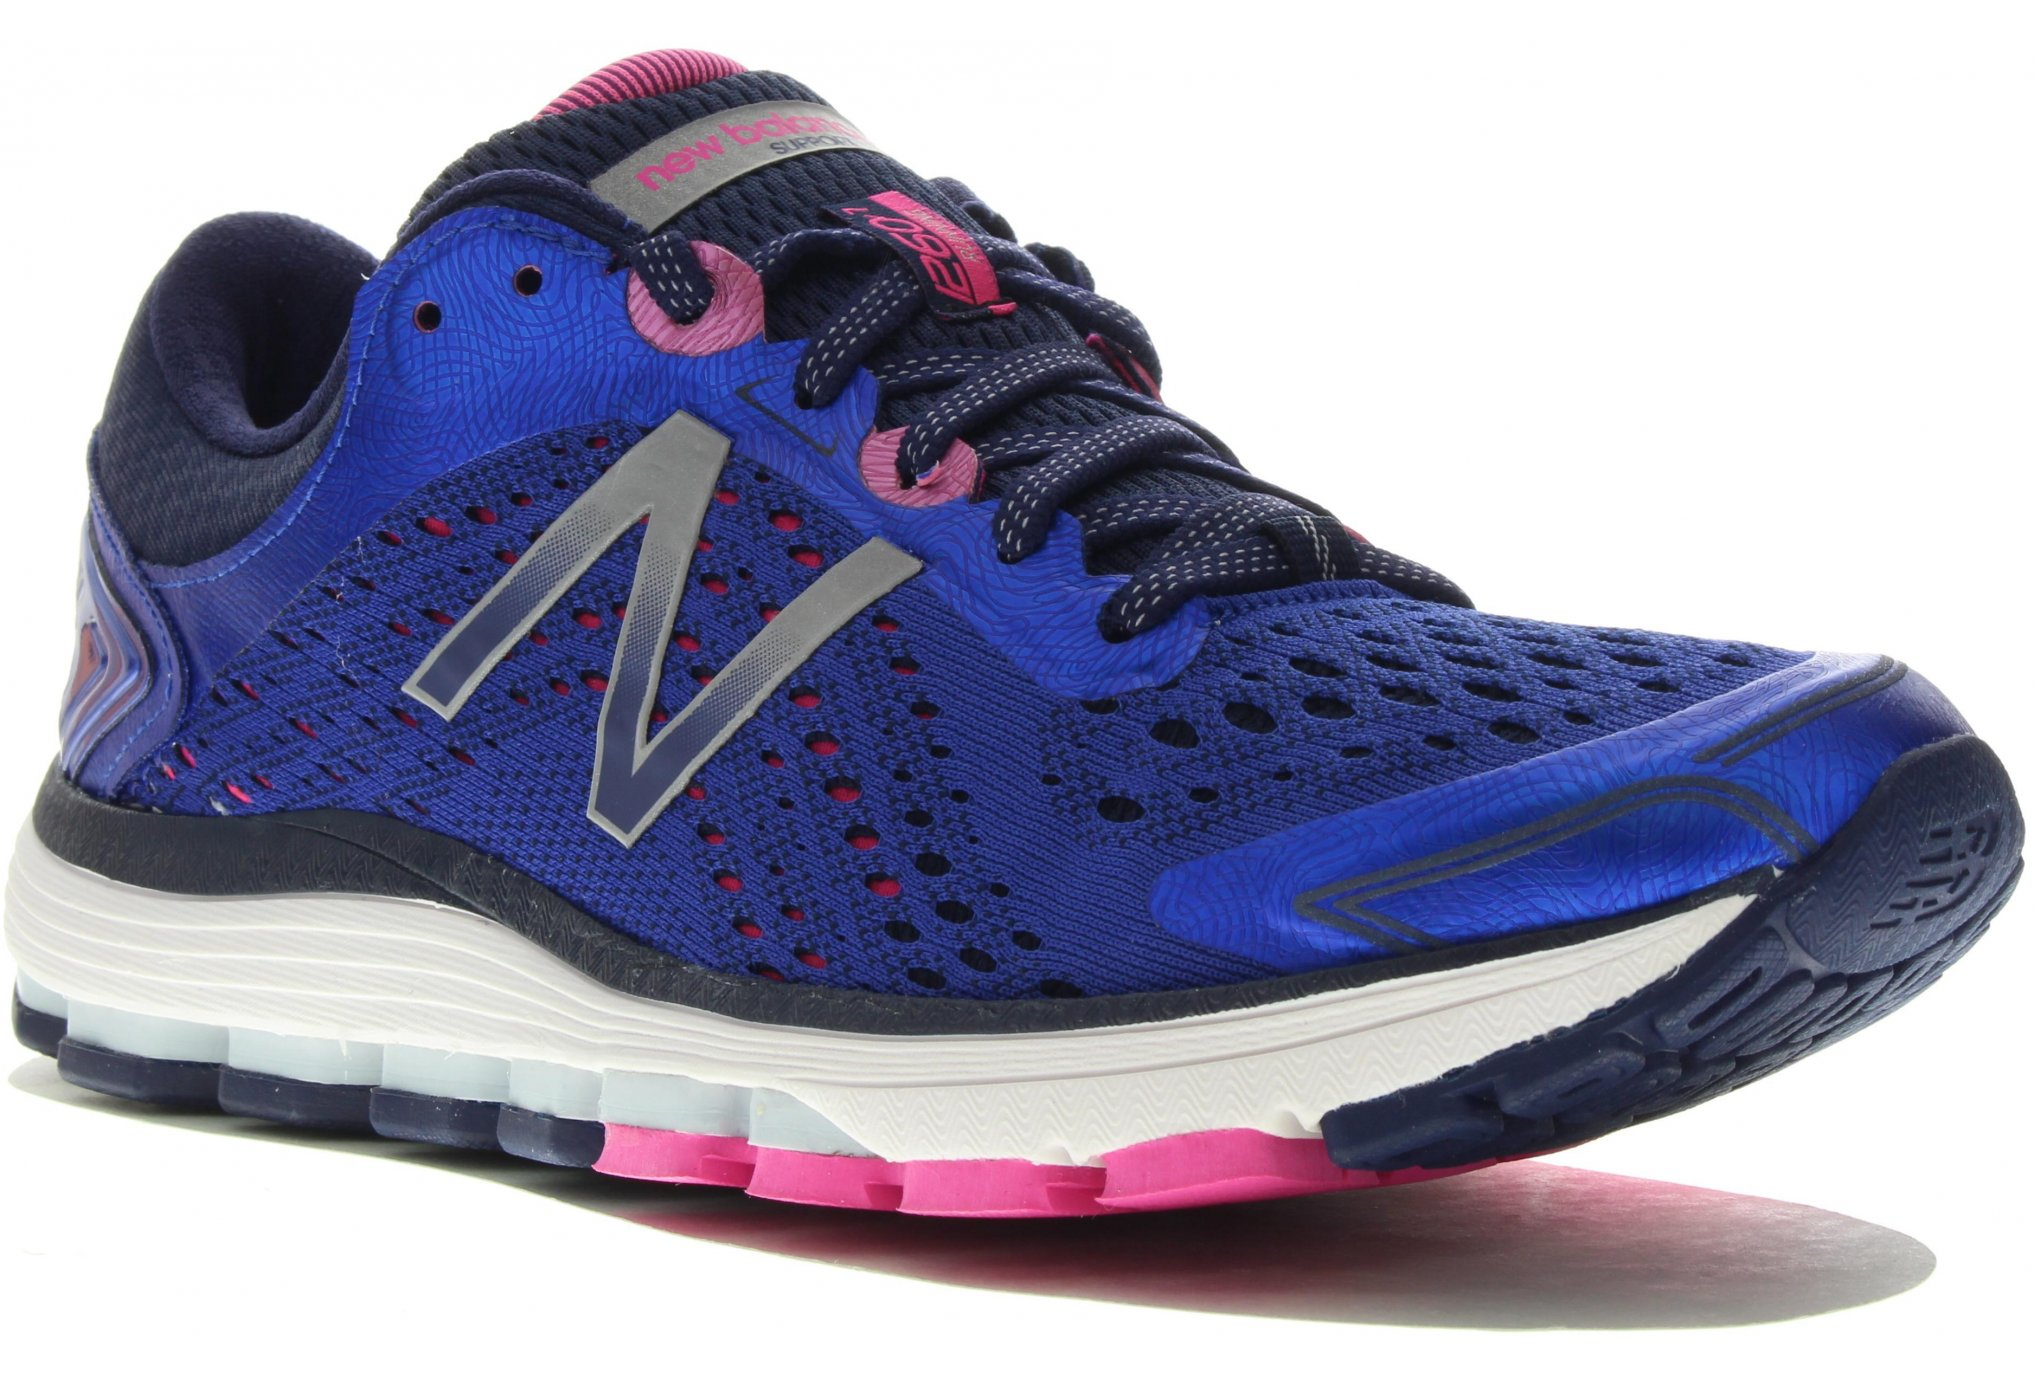 Trail Session New Balance W 1260 V7 B Chaussures running